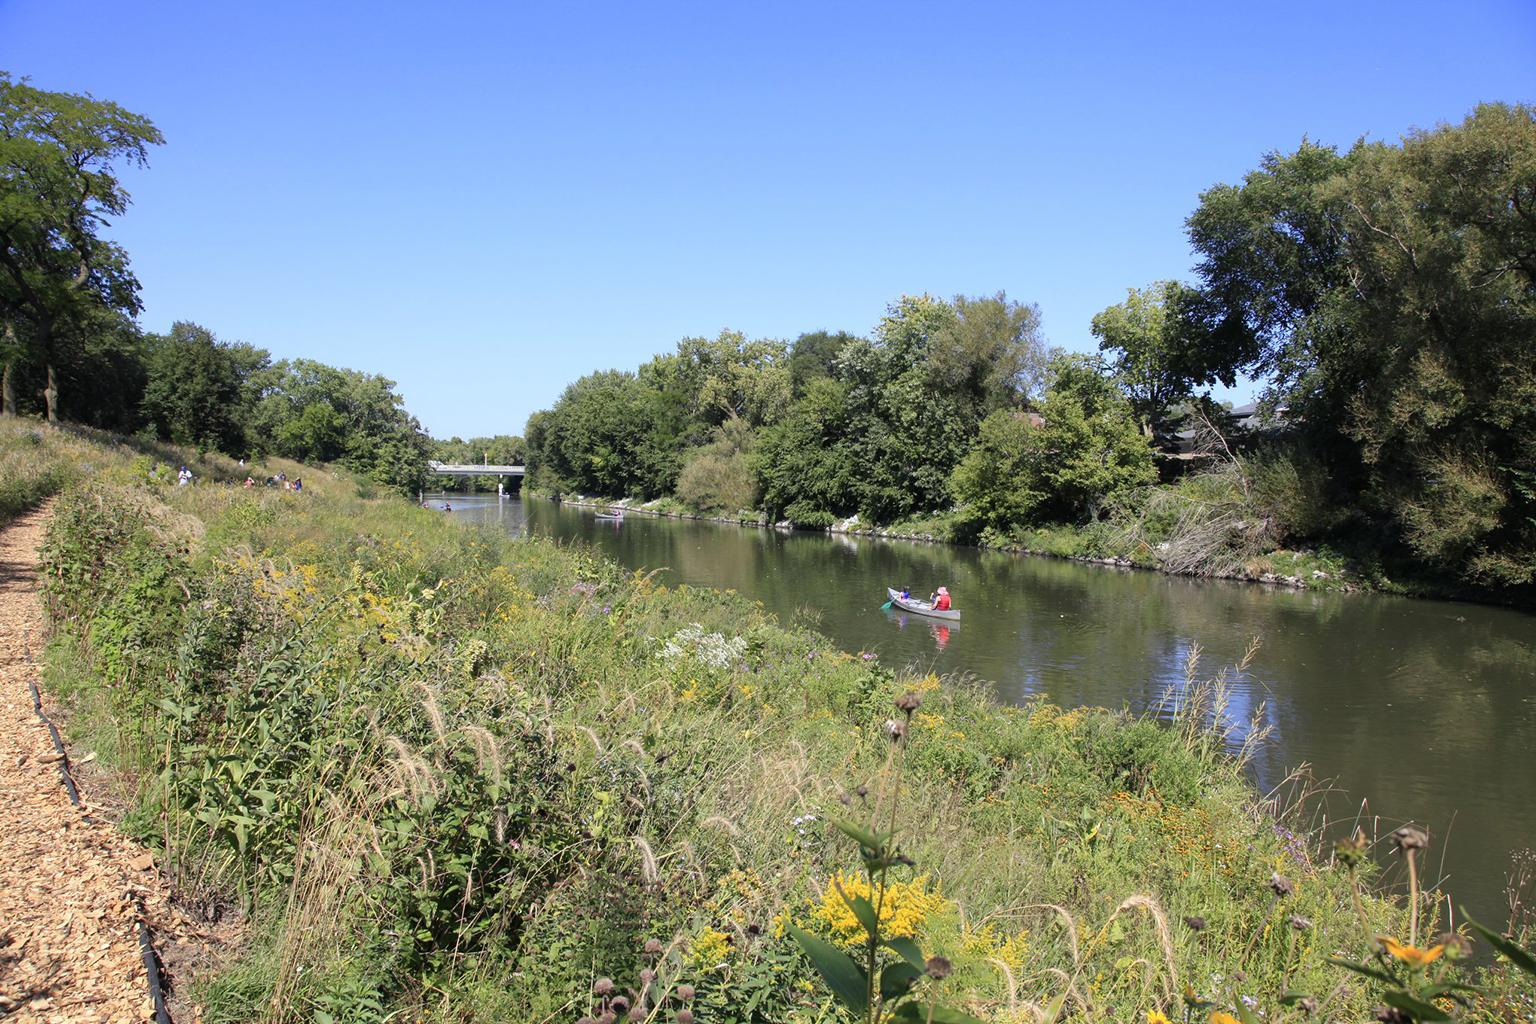 The North Branch of the Chicago River near Montrose Avenue in Horner Park. (Courtesy U.S. Army Corps of Engineers)